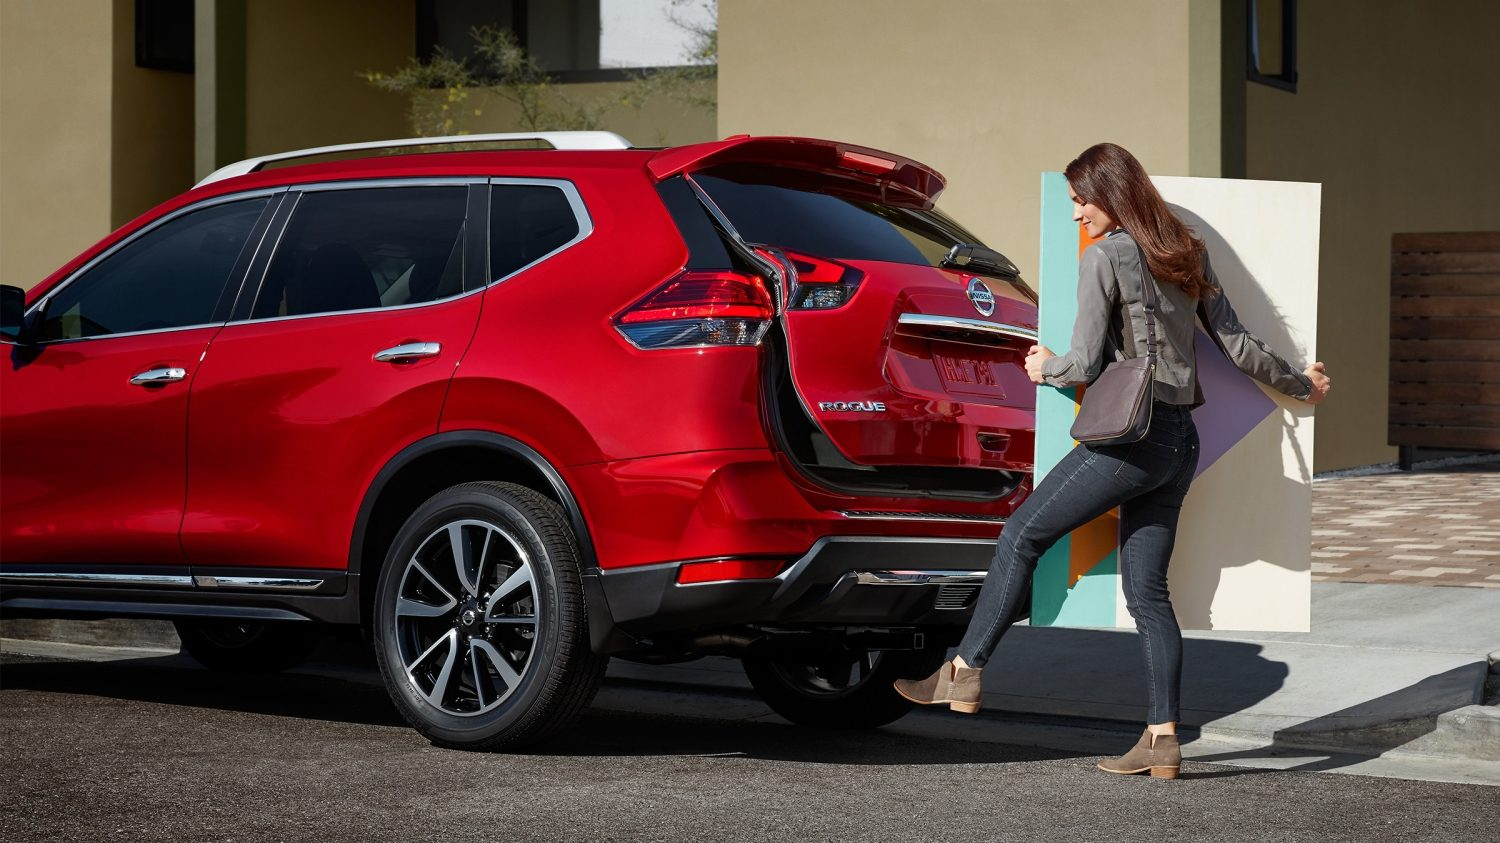 Nissan Rogue motion-activated liftgate